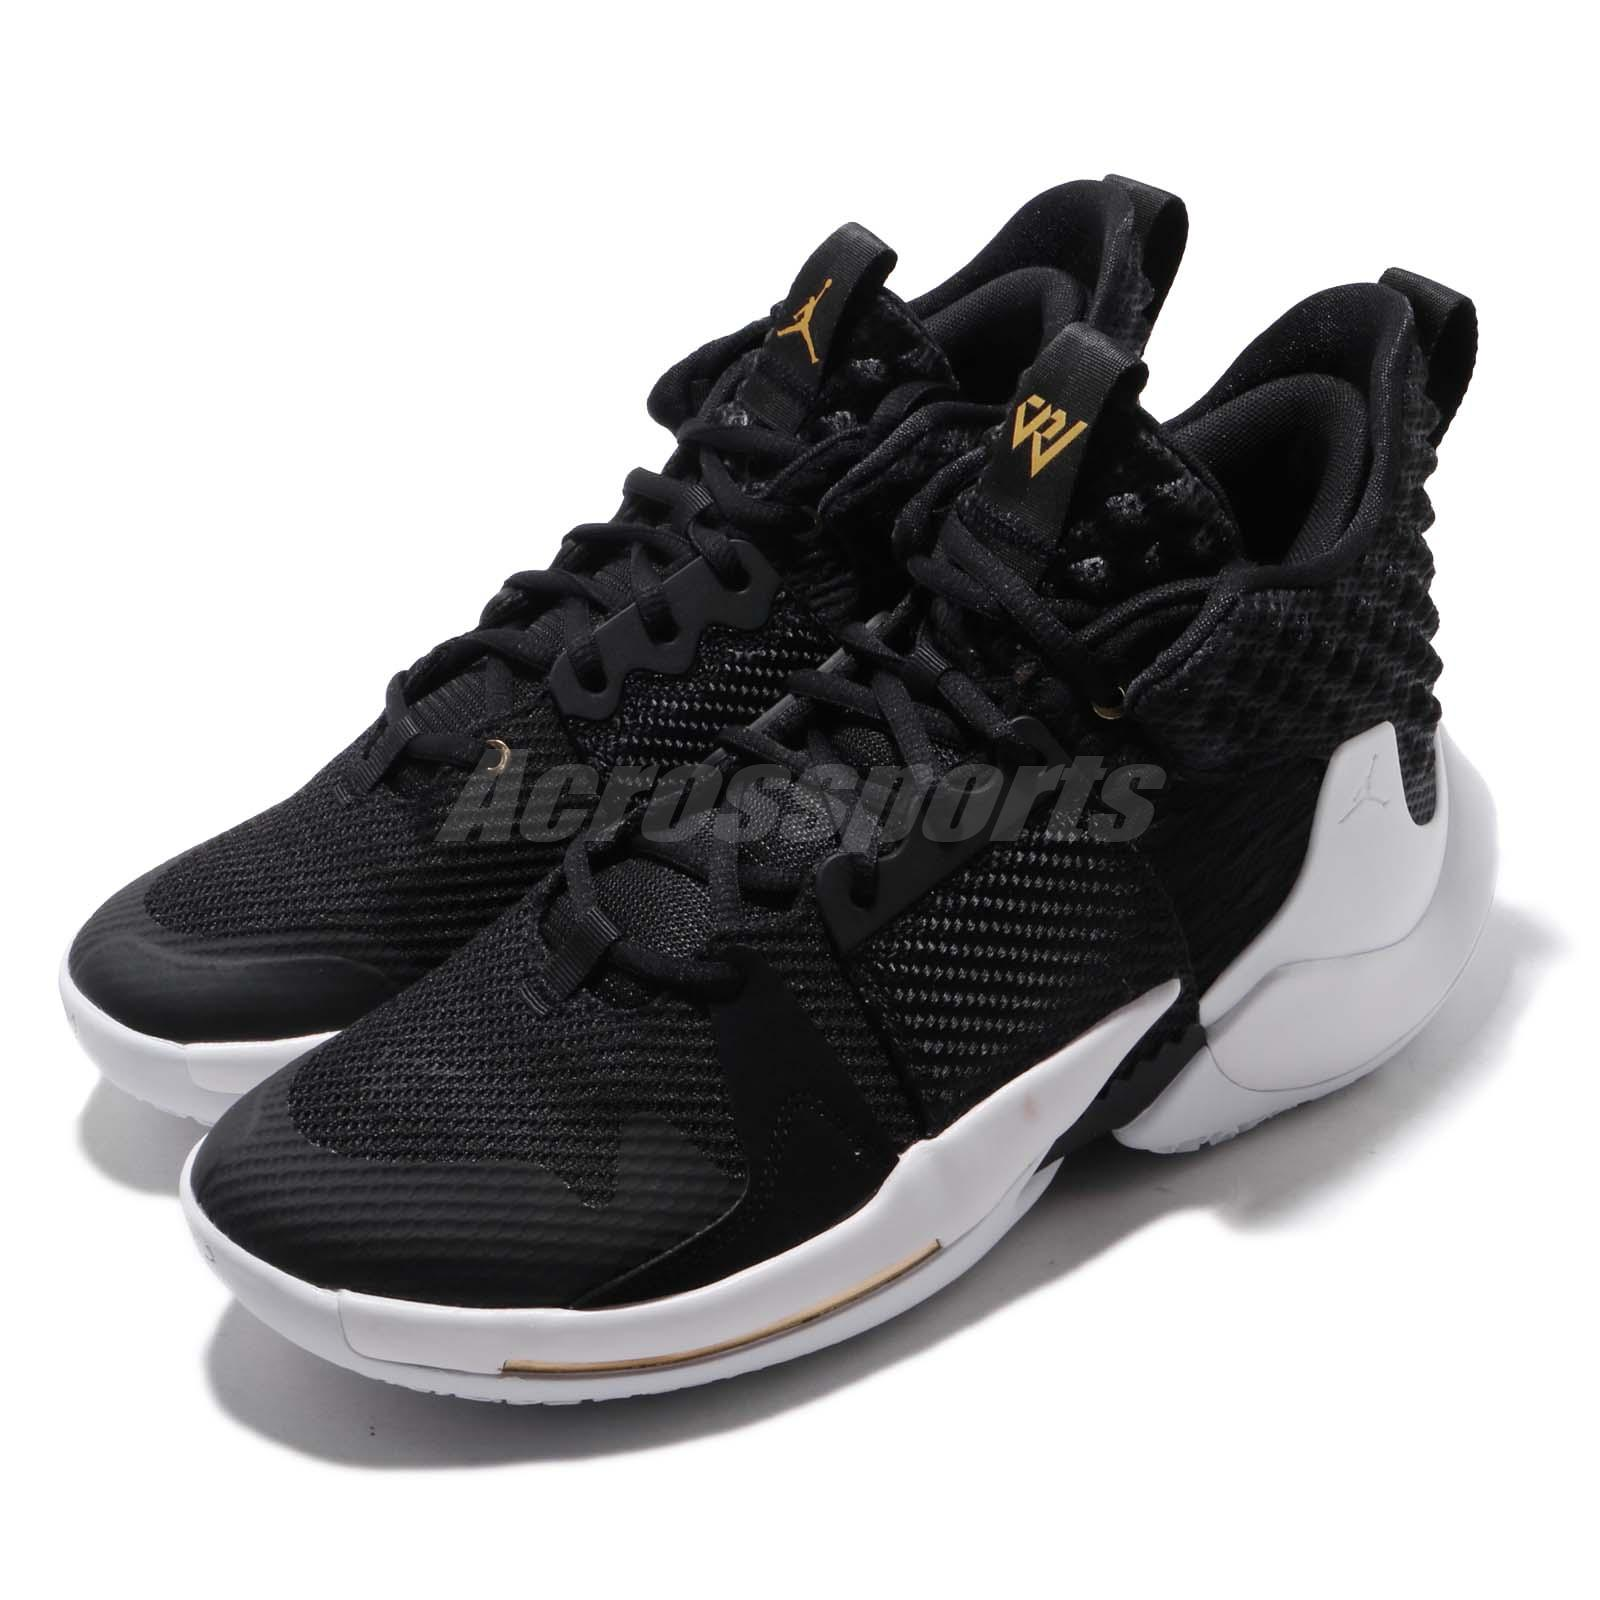 info for 0f50f 015e0 Details about Nike Jordan Why Not Zer0.2 PF The Family Russell Westbrook  Men Shoe BV6352-001